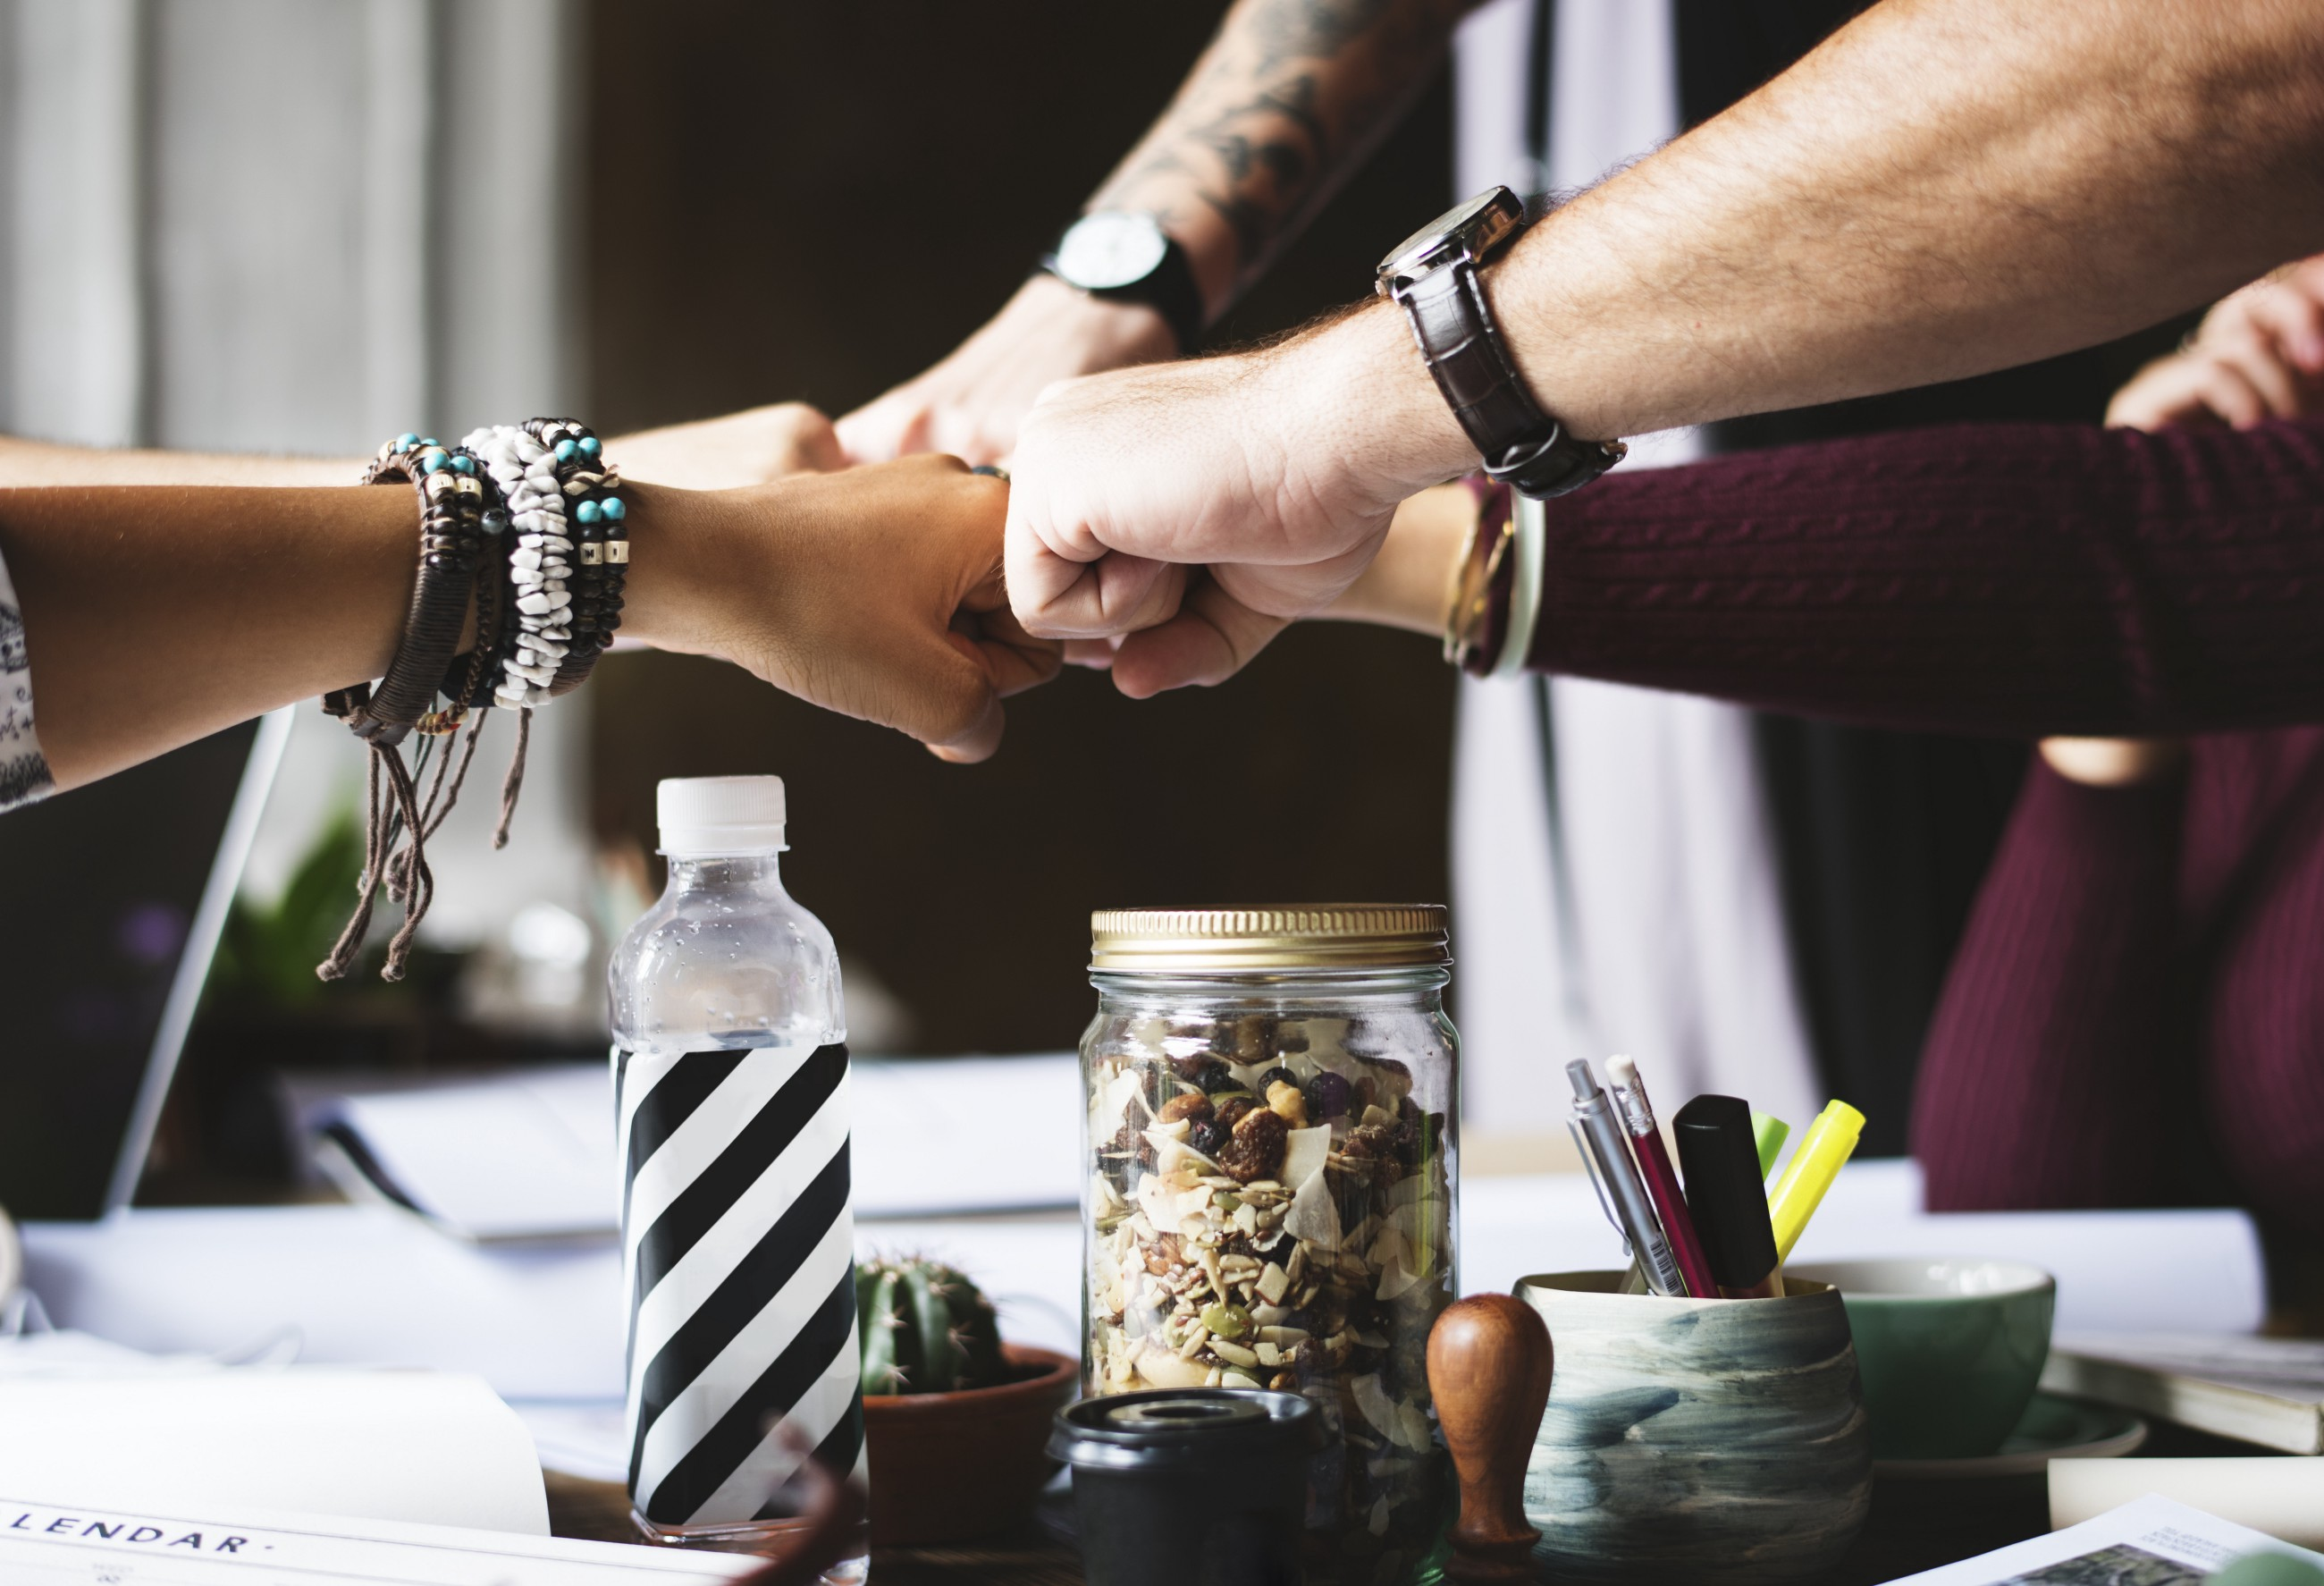 The Roles of the Product Manager and Product Owner